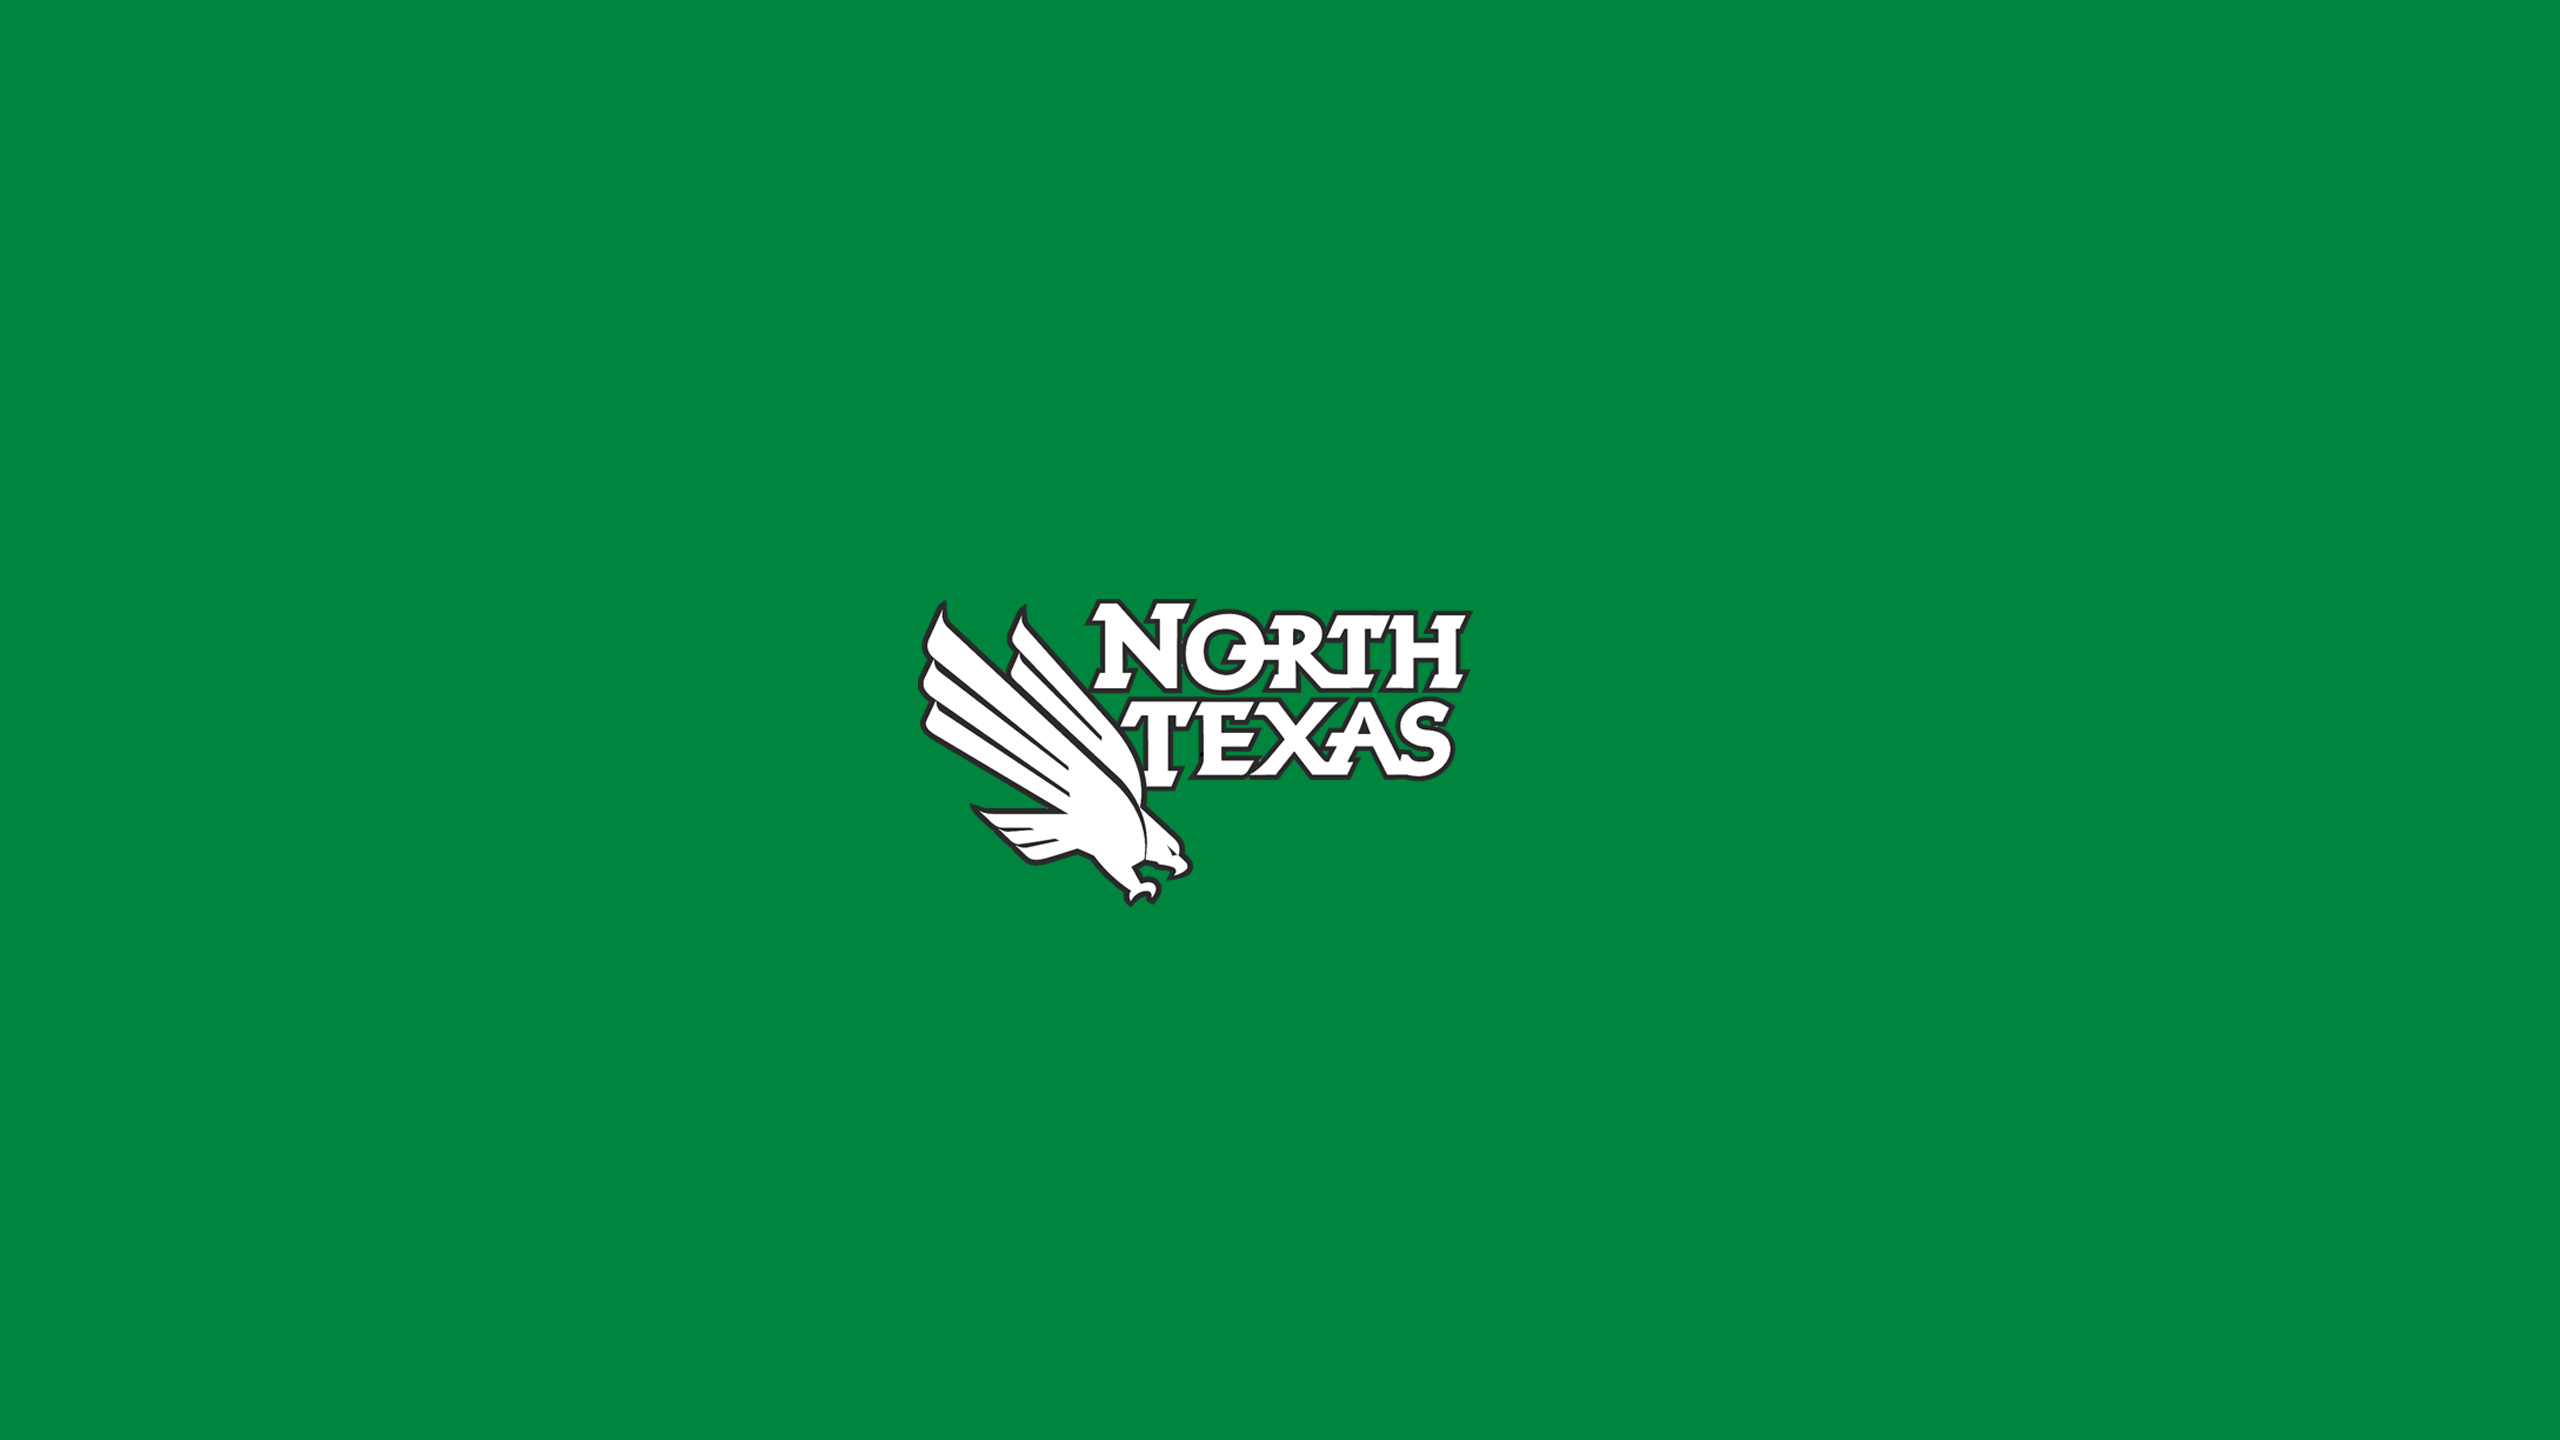 University of North Texas Mean Green